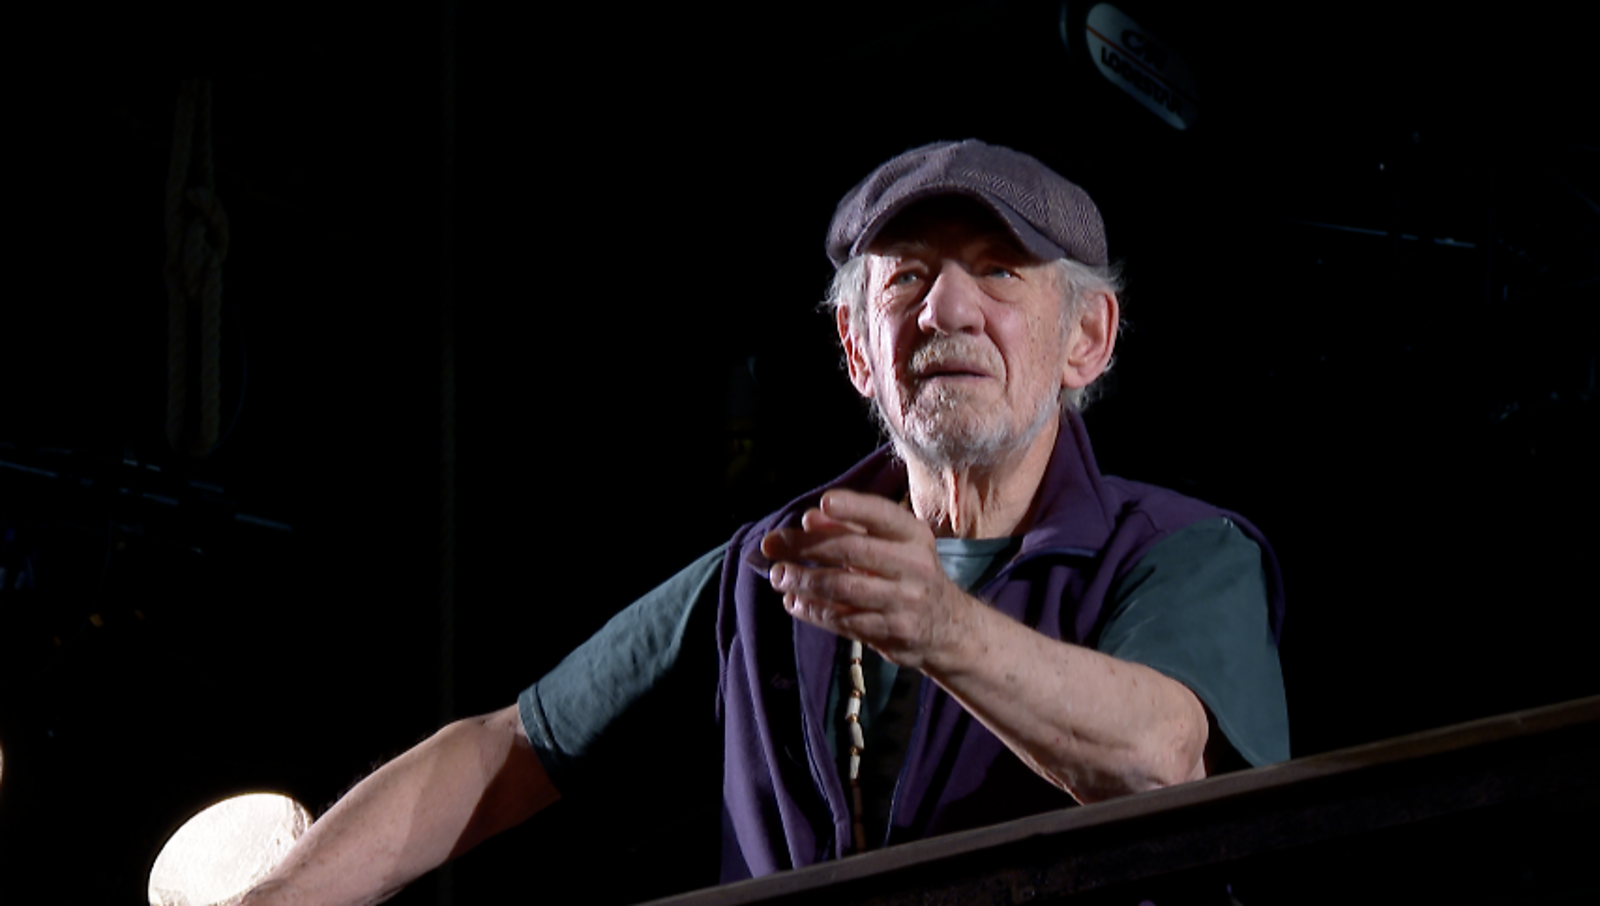 Sir Ian McKellen on playing 'young prince' Hamlet at 81